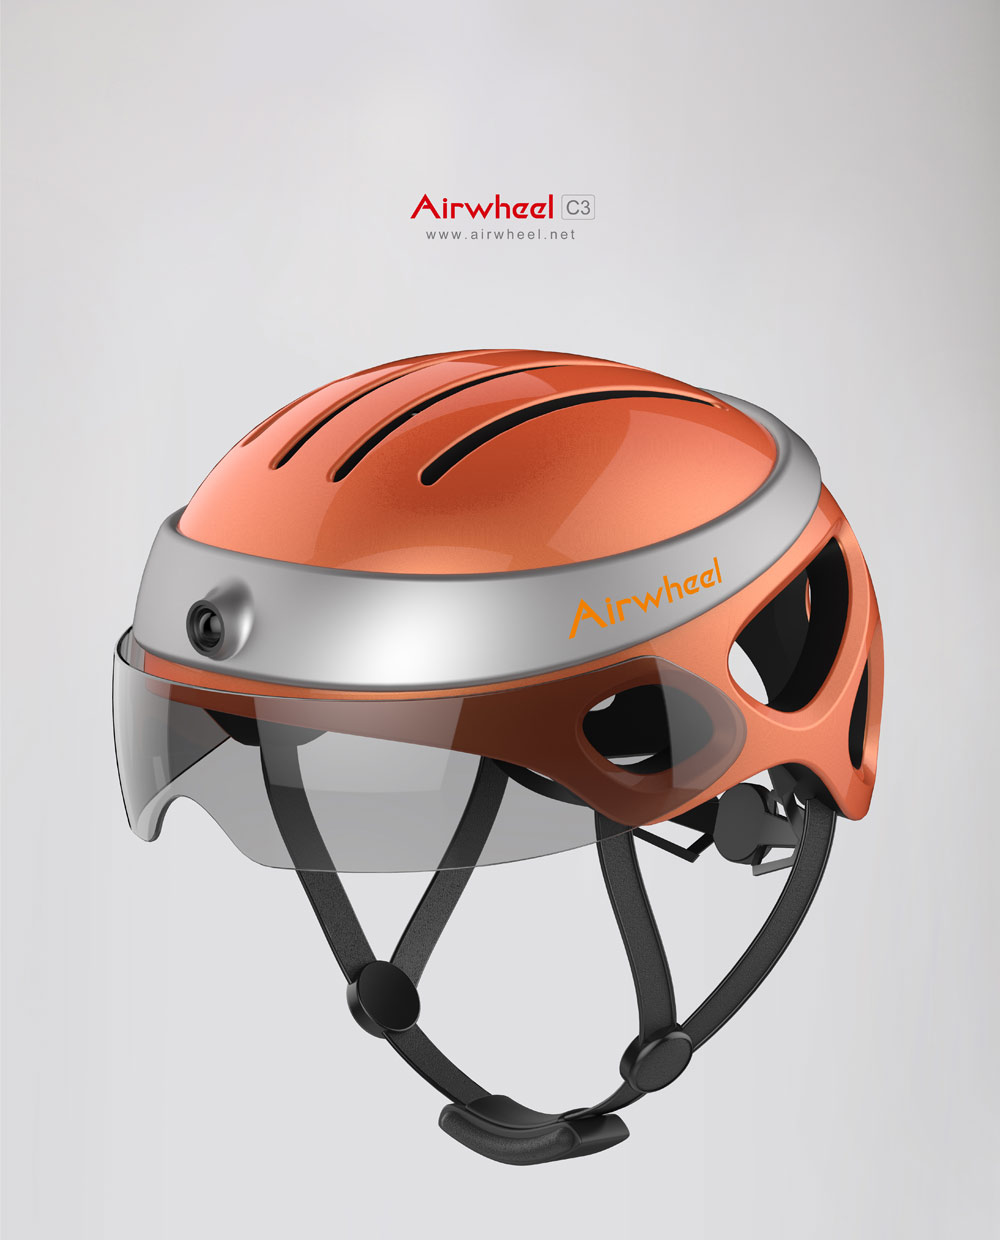 airwheel c3 best motorcycle helmet